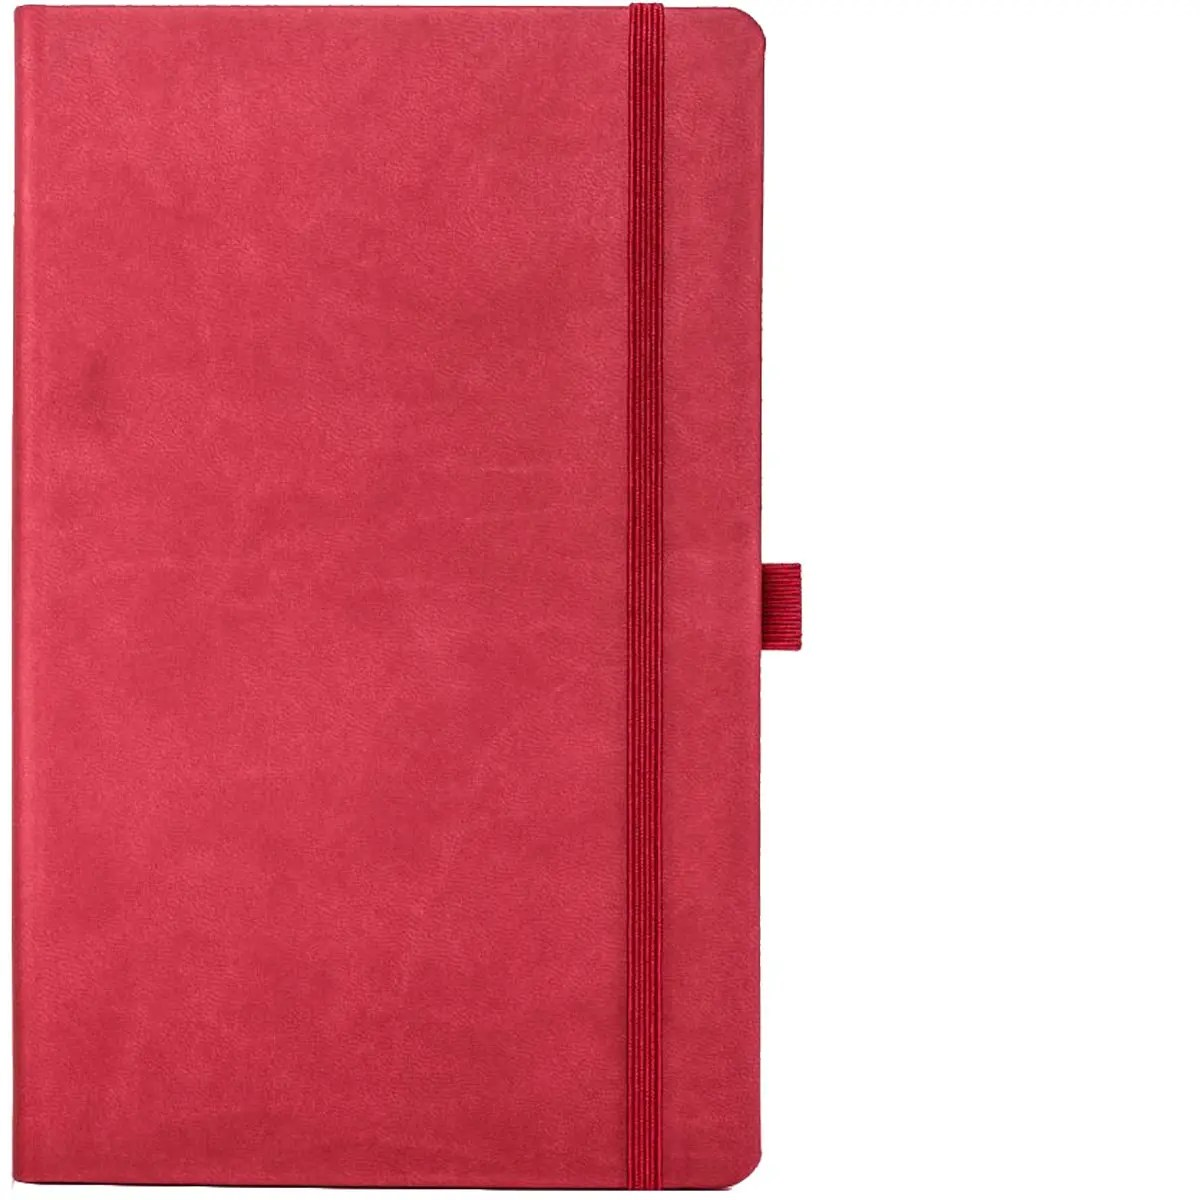 Image Showing Tucson Branded Notebooks from The Notebook Warehouse, available in Coral Red